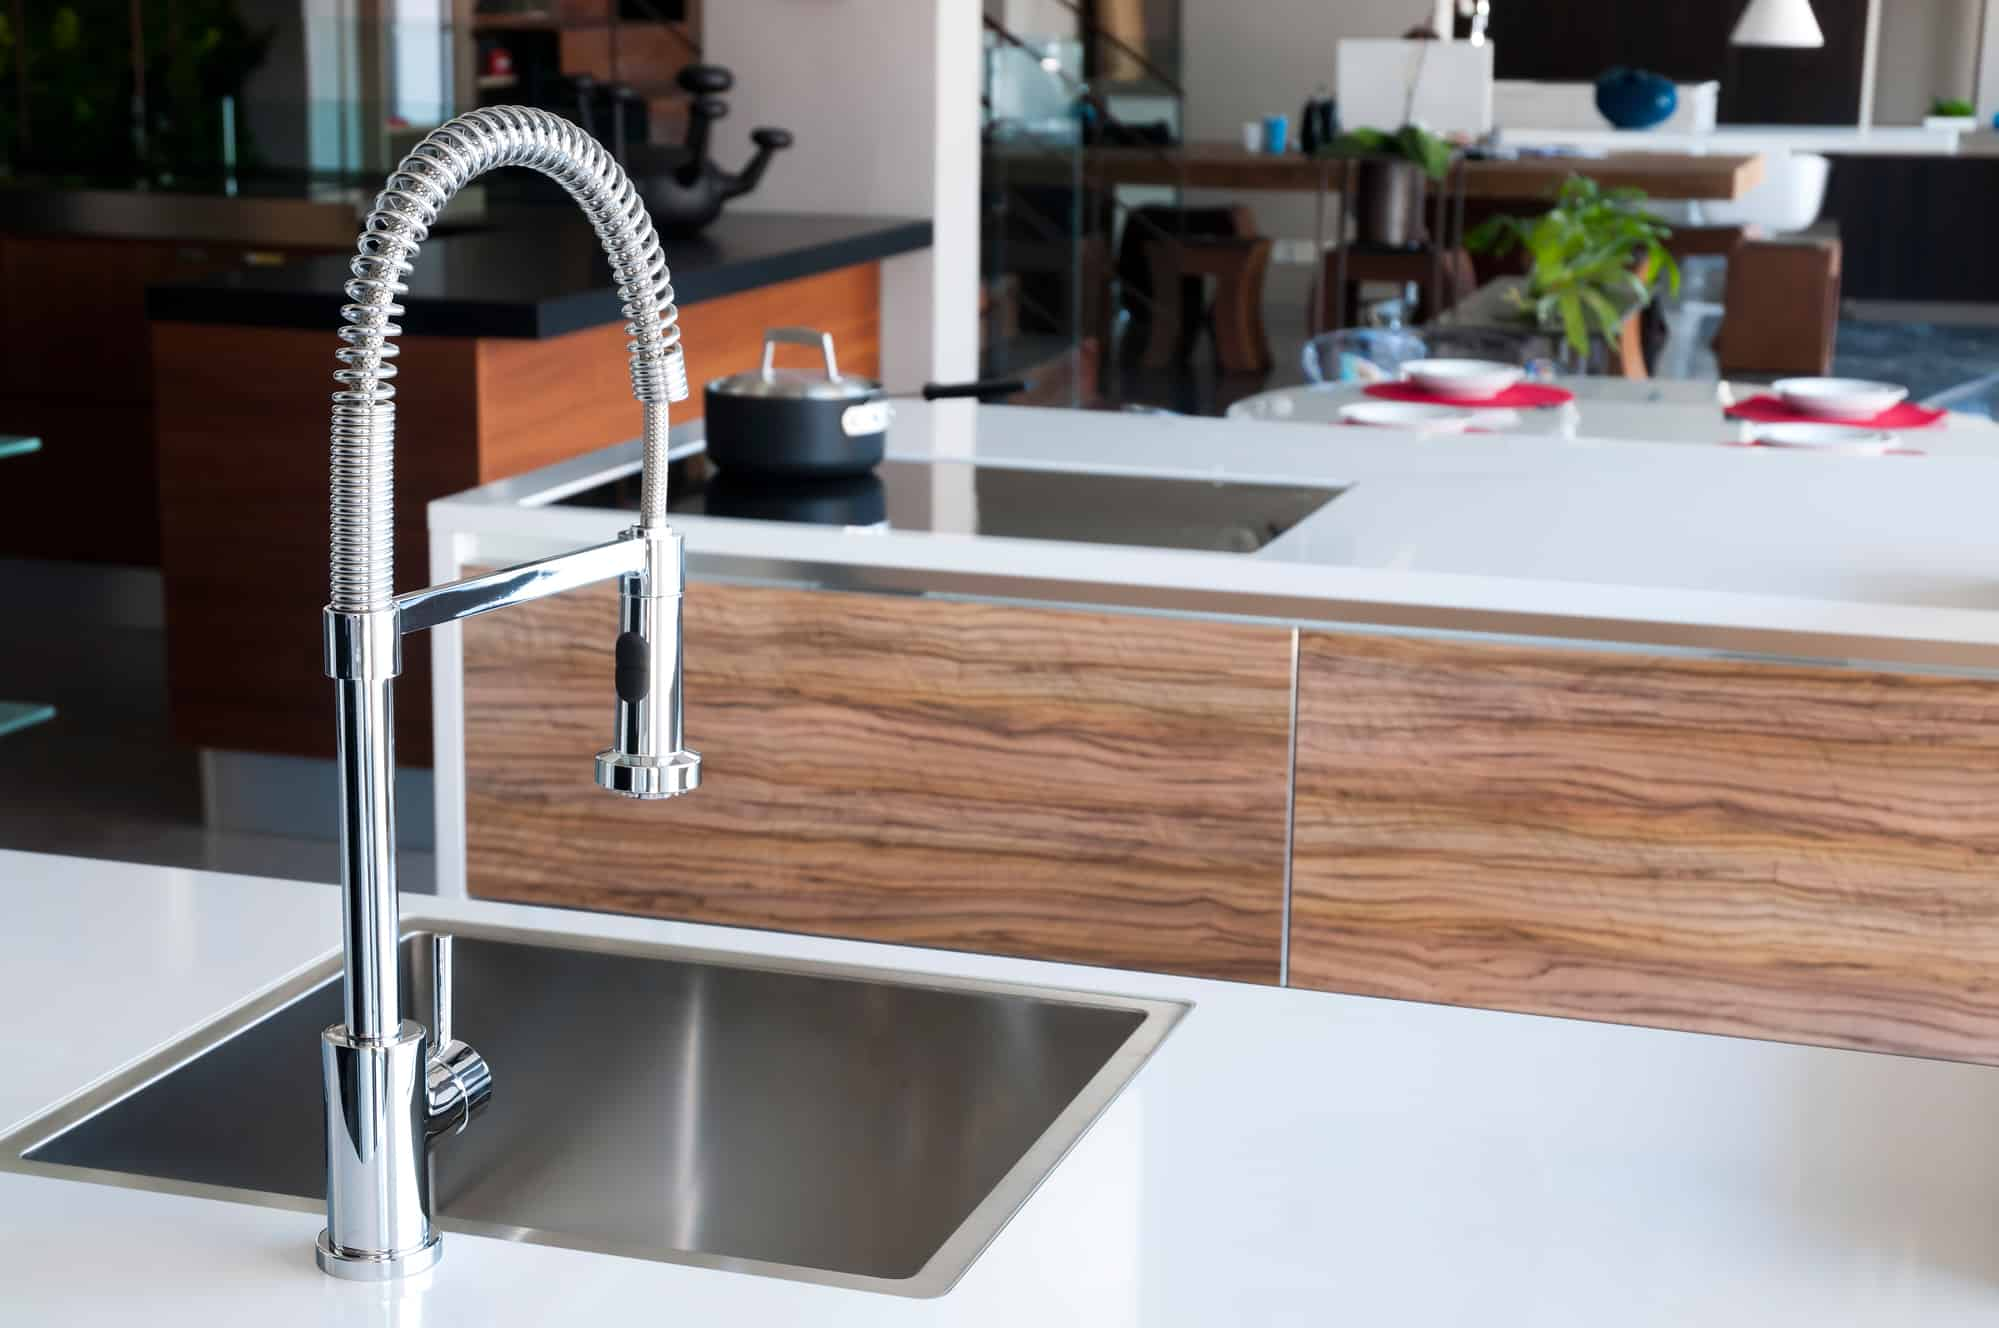 What Is a Pre-Rinse Kitchen Faucet